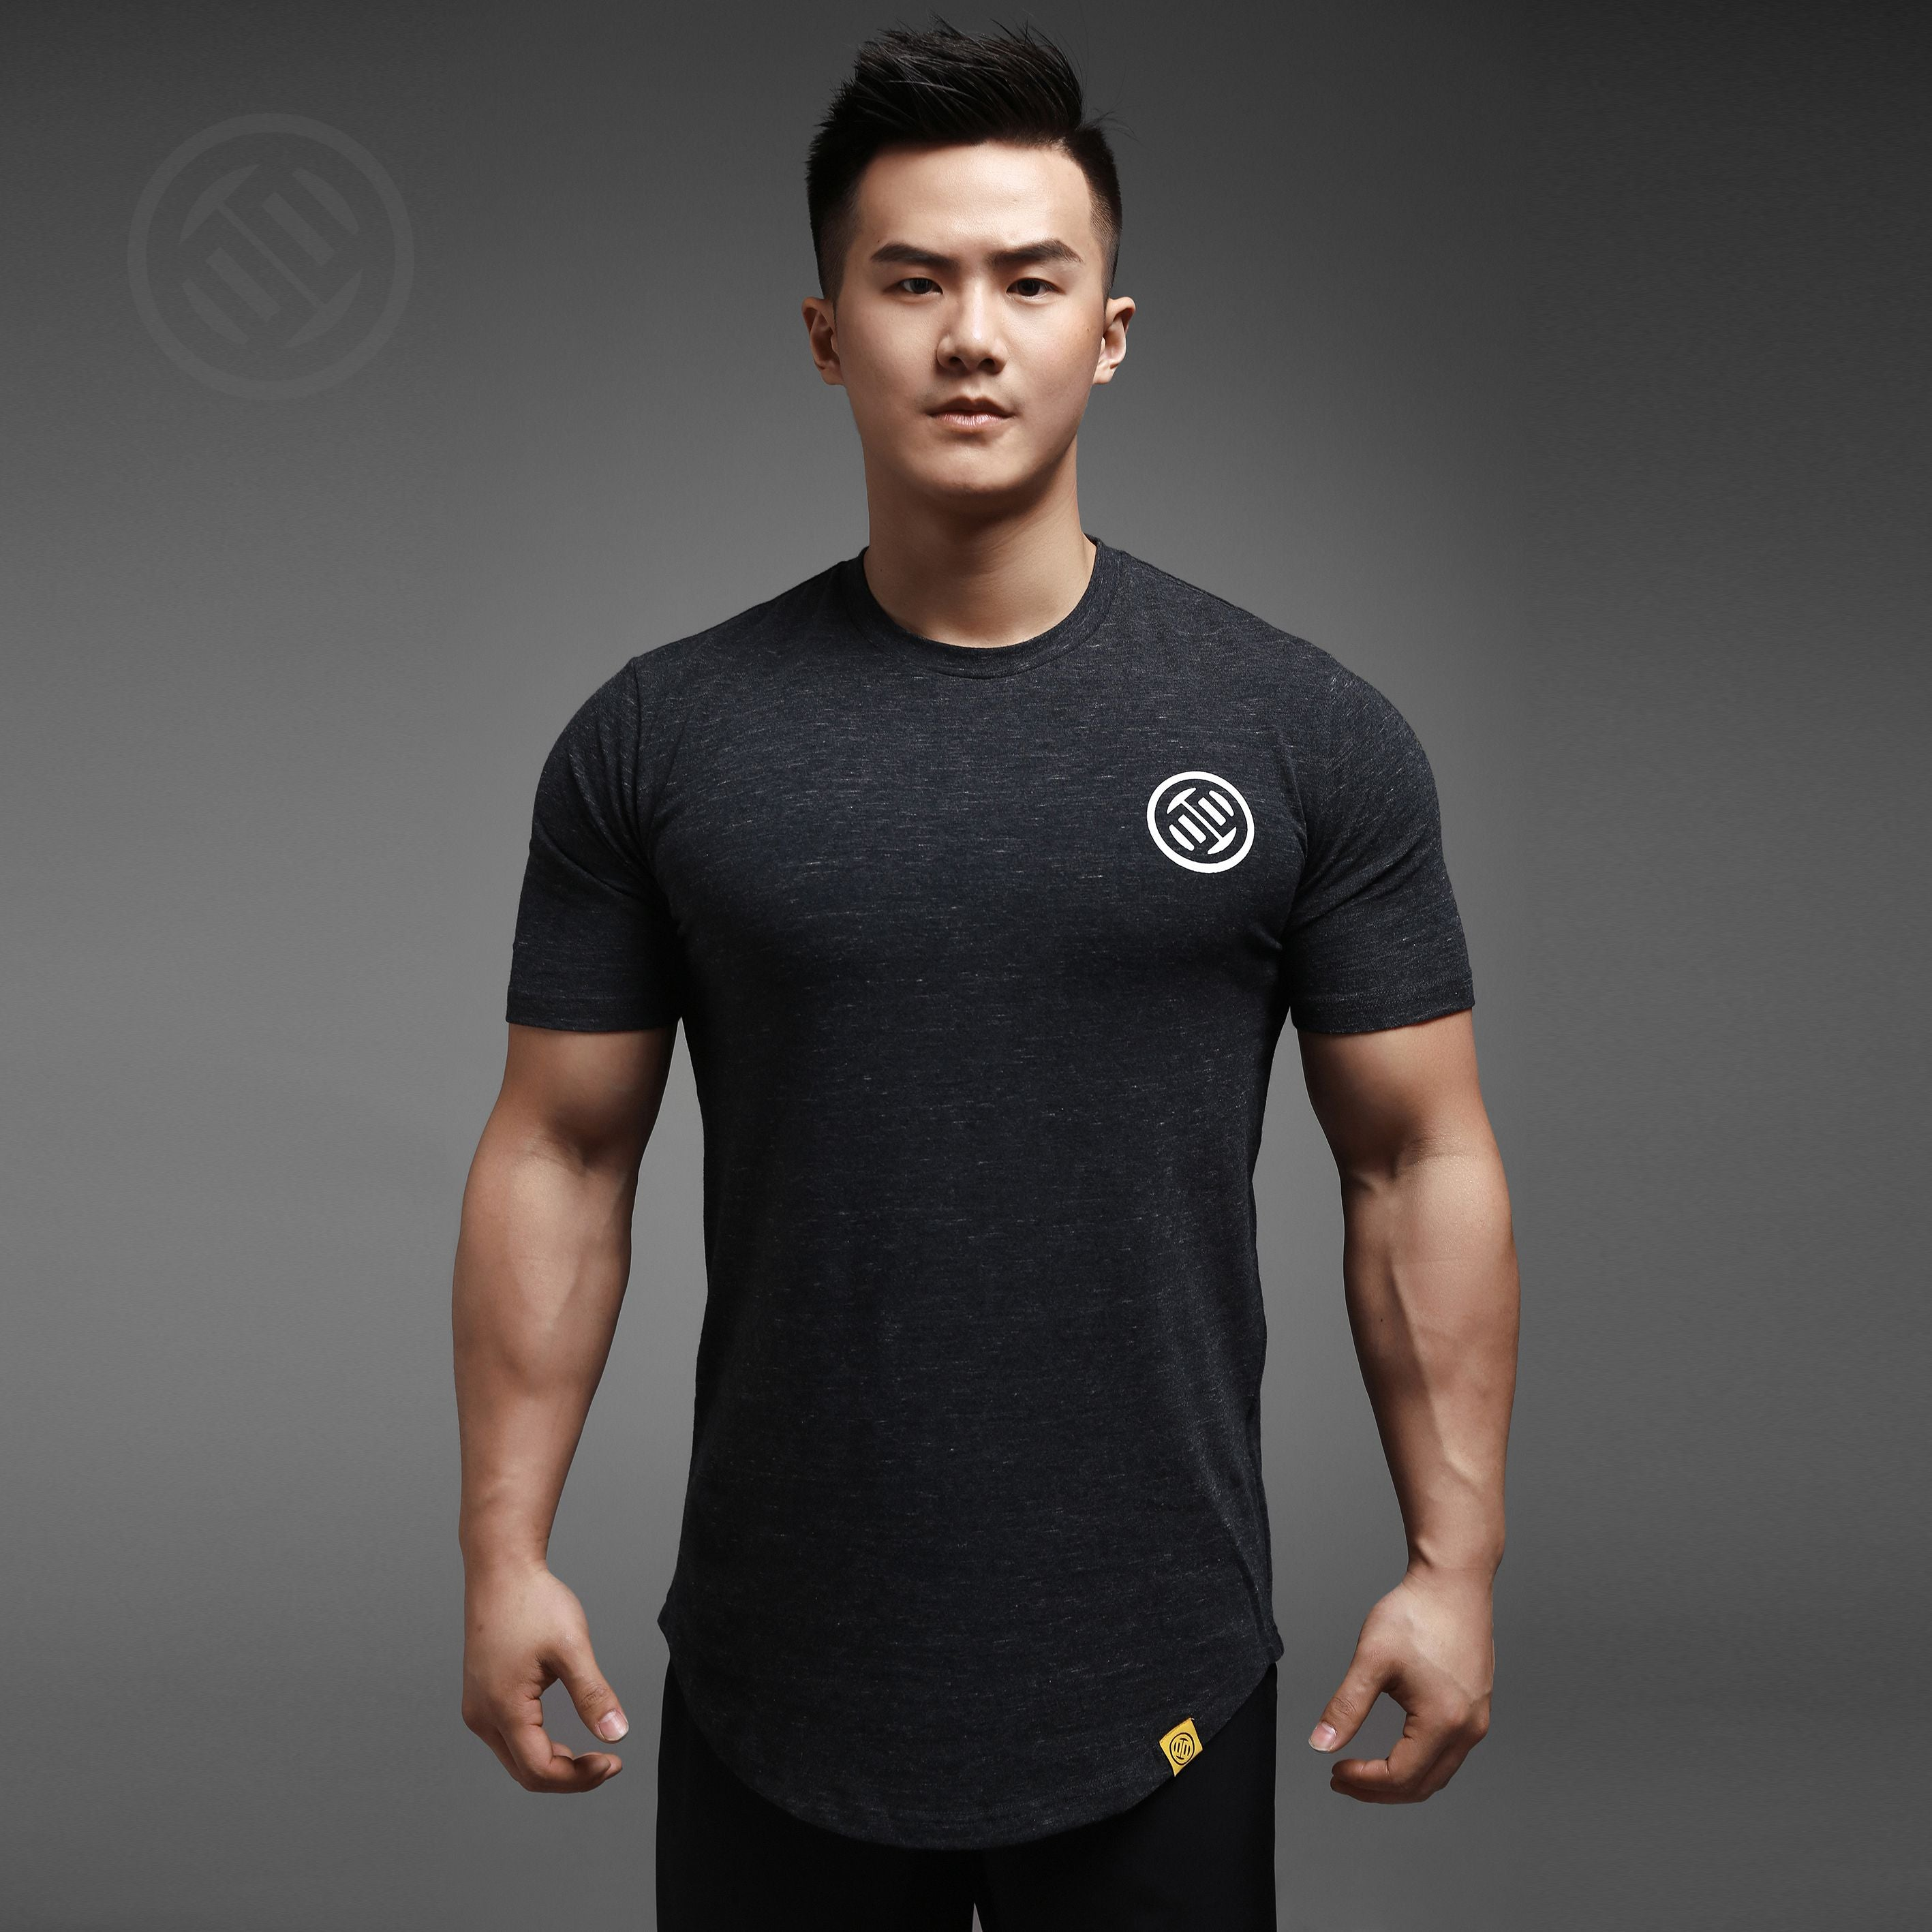 LUXIAOJUN Training T-Shirt White Logo